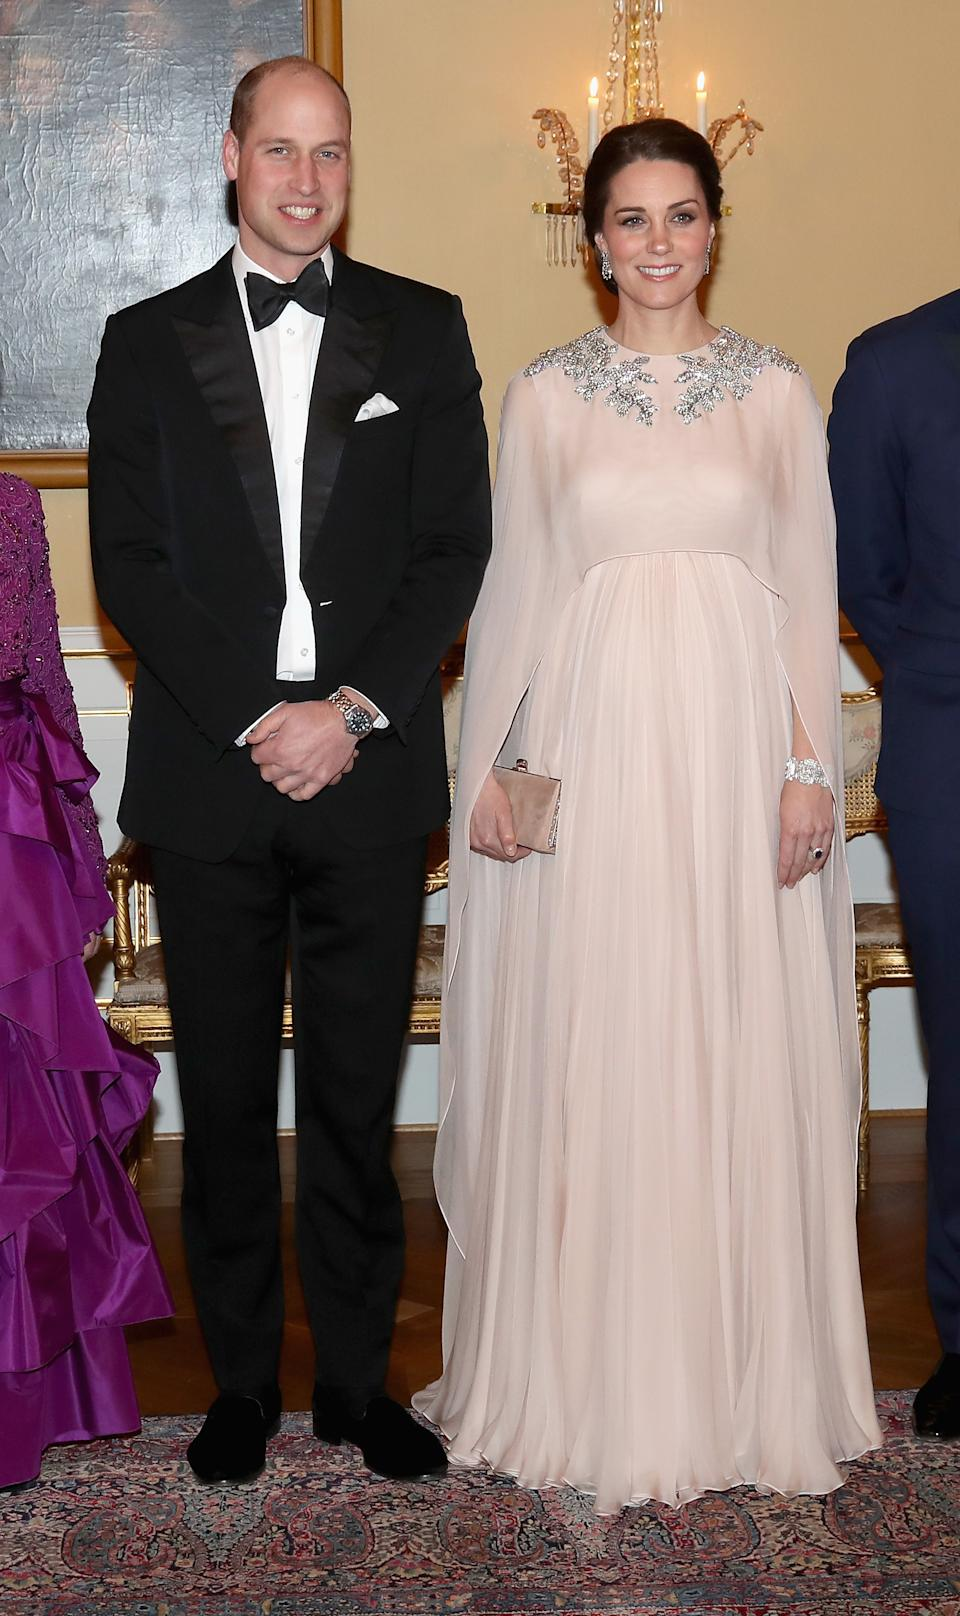 The Duke and Duchess of Cambridge on their last tour of Sweden and Norway in February 2018 [Photo: Getty]